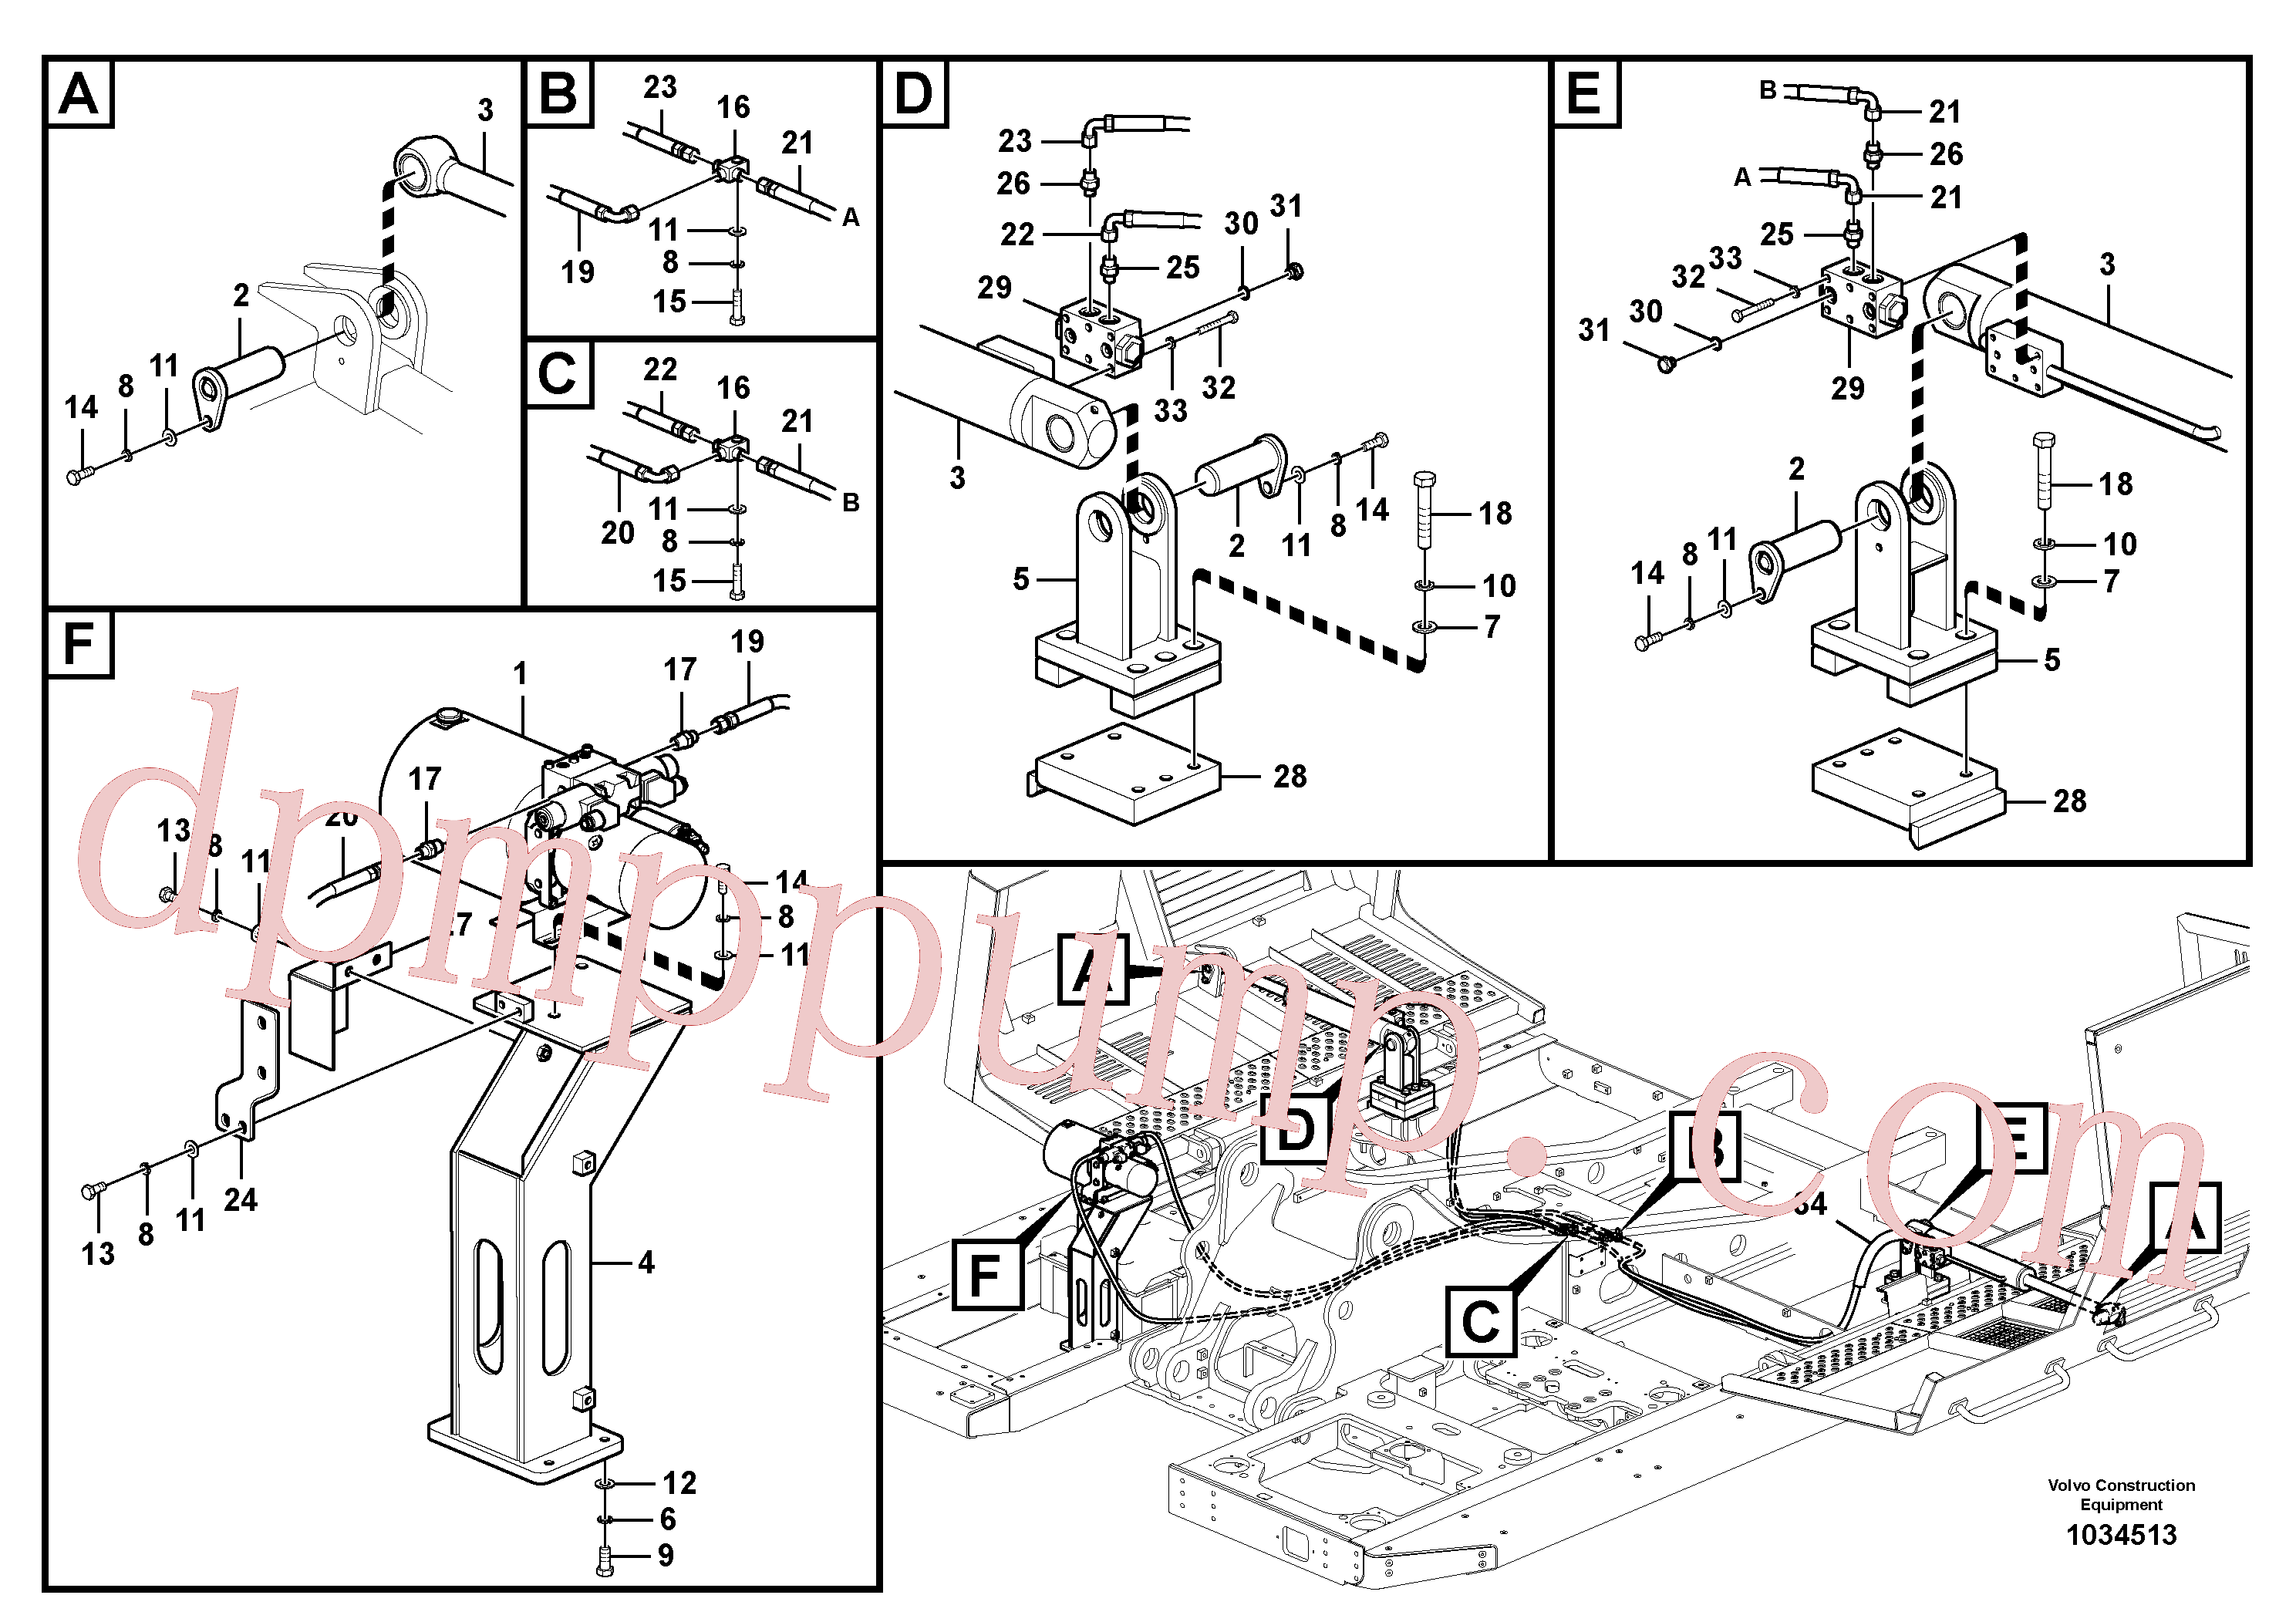 VOE14561069 for Volvo Working hydraulics, Gullwing tilting device(1034513 assembly)